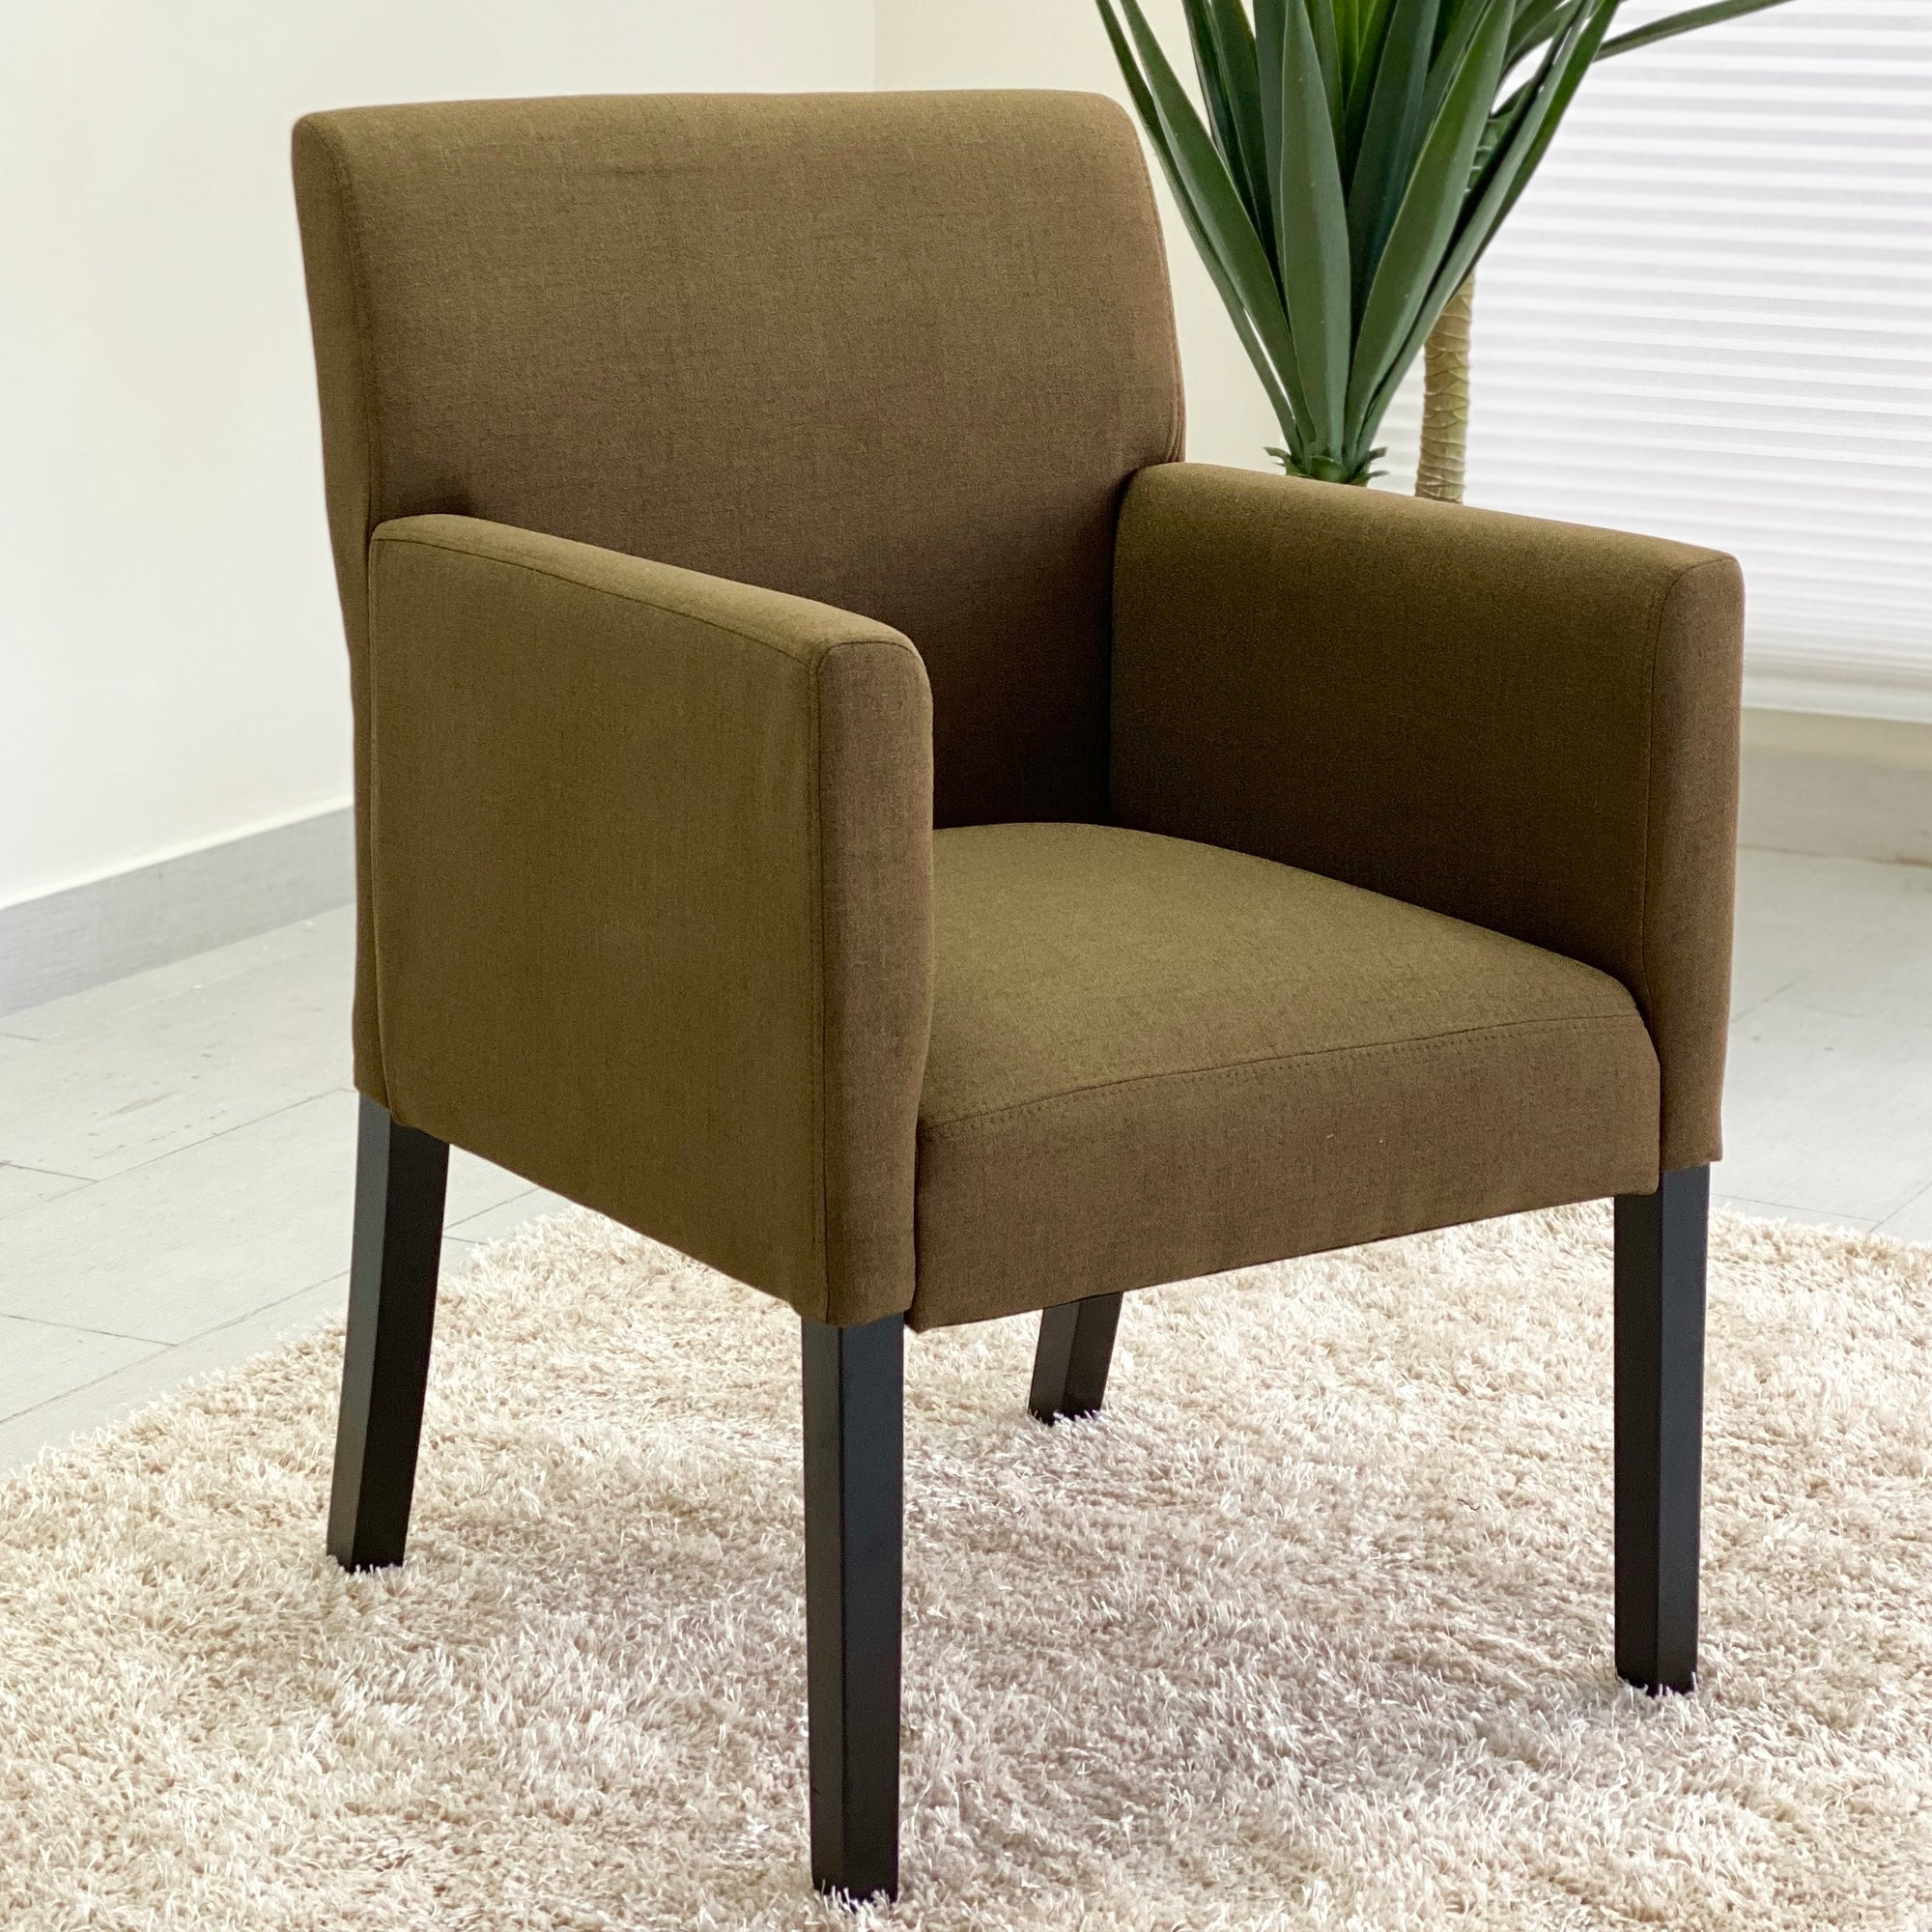 Rouse Accent Brown Fabric Chair